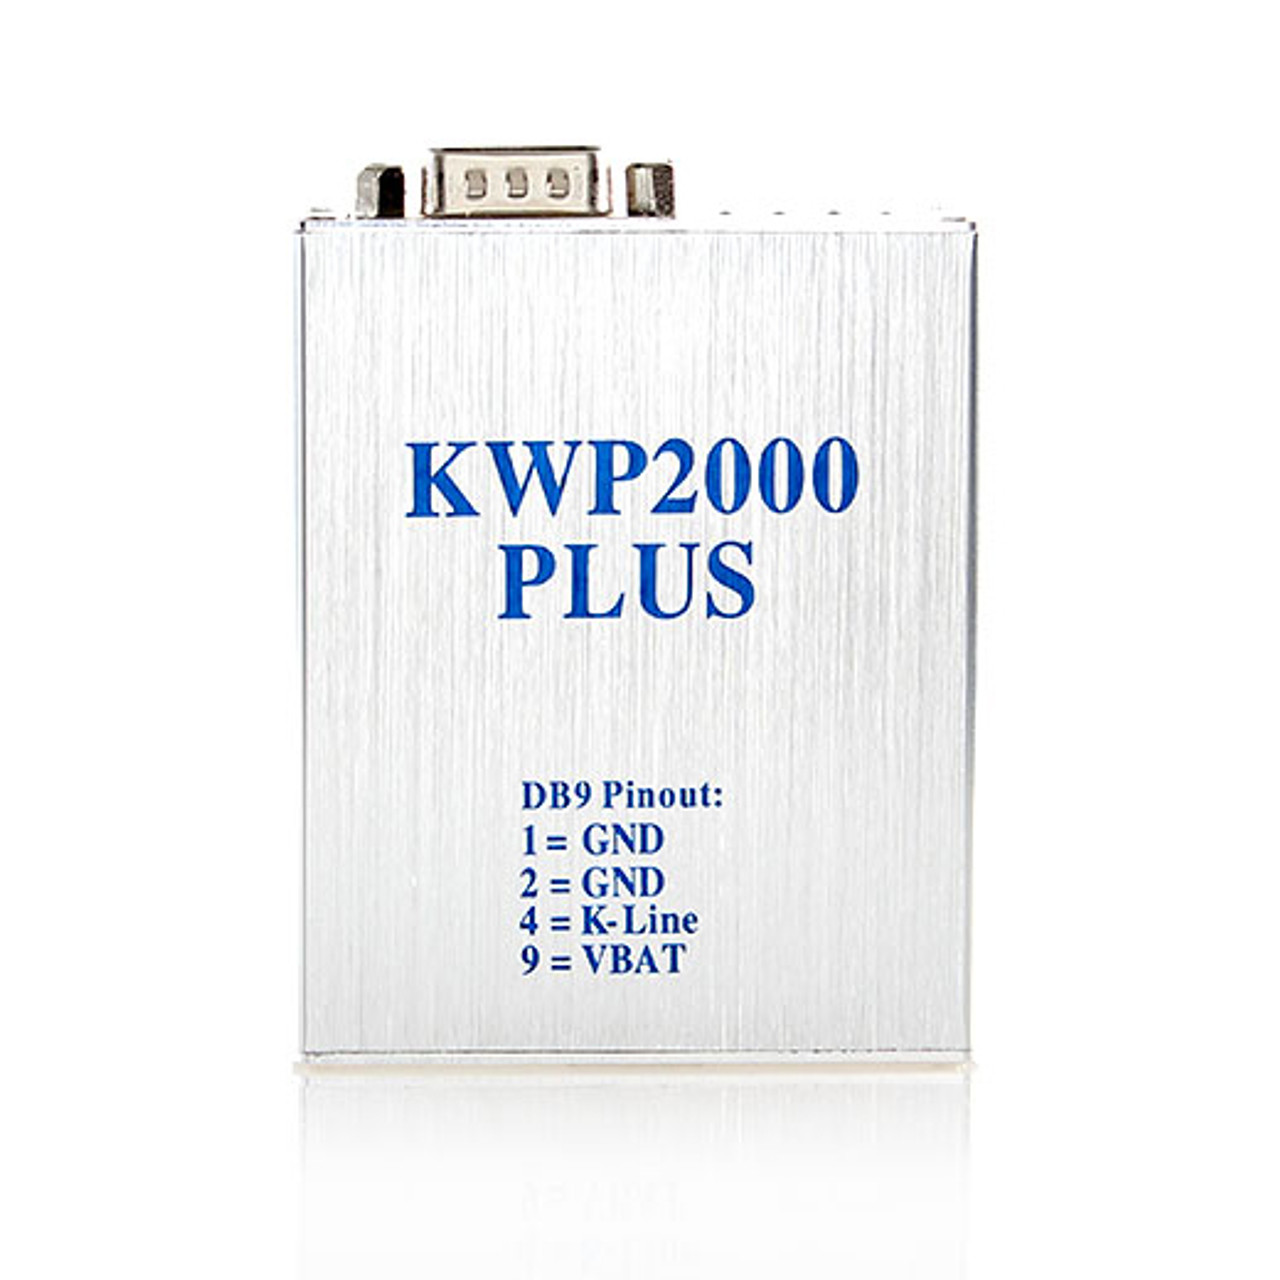 kwp2000 plus usb driver windows 7